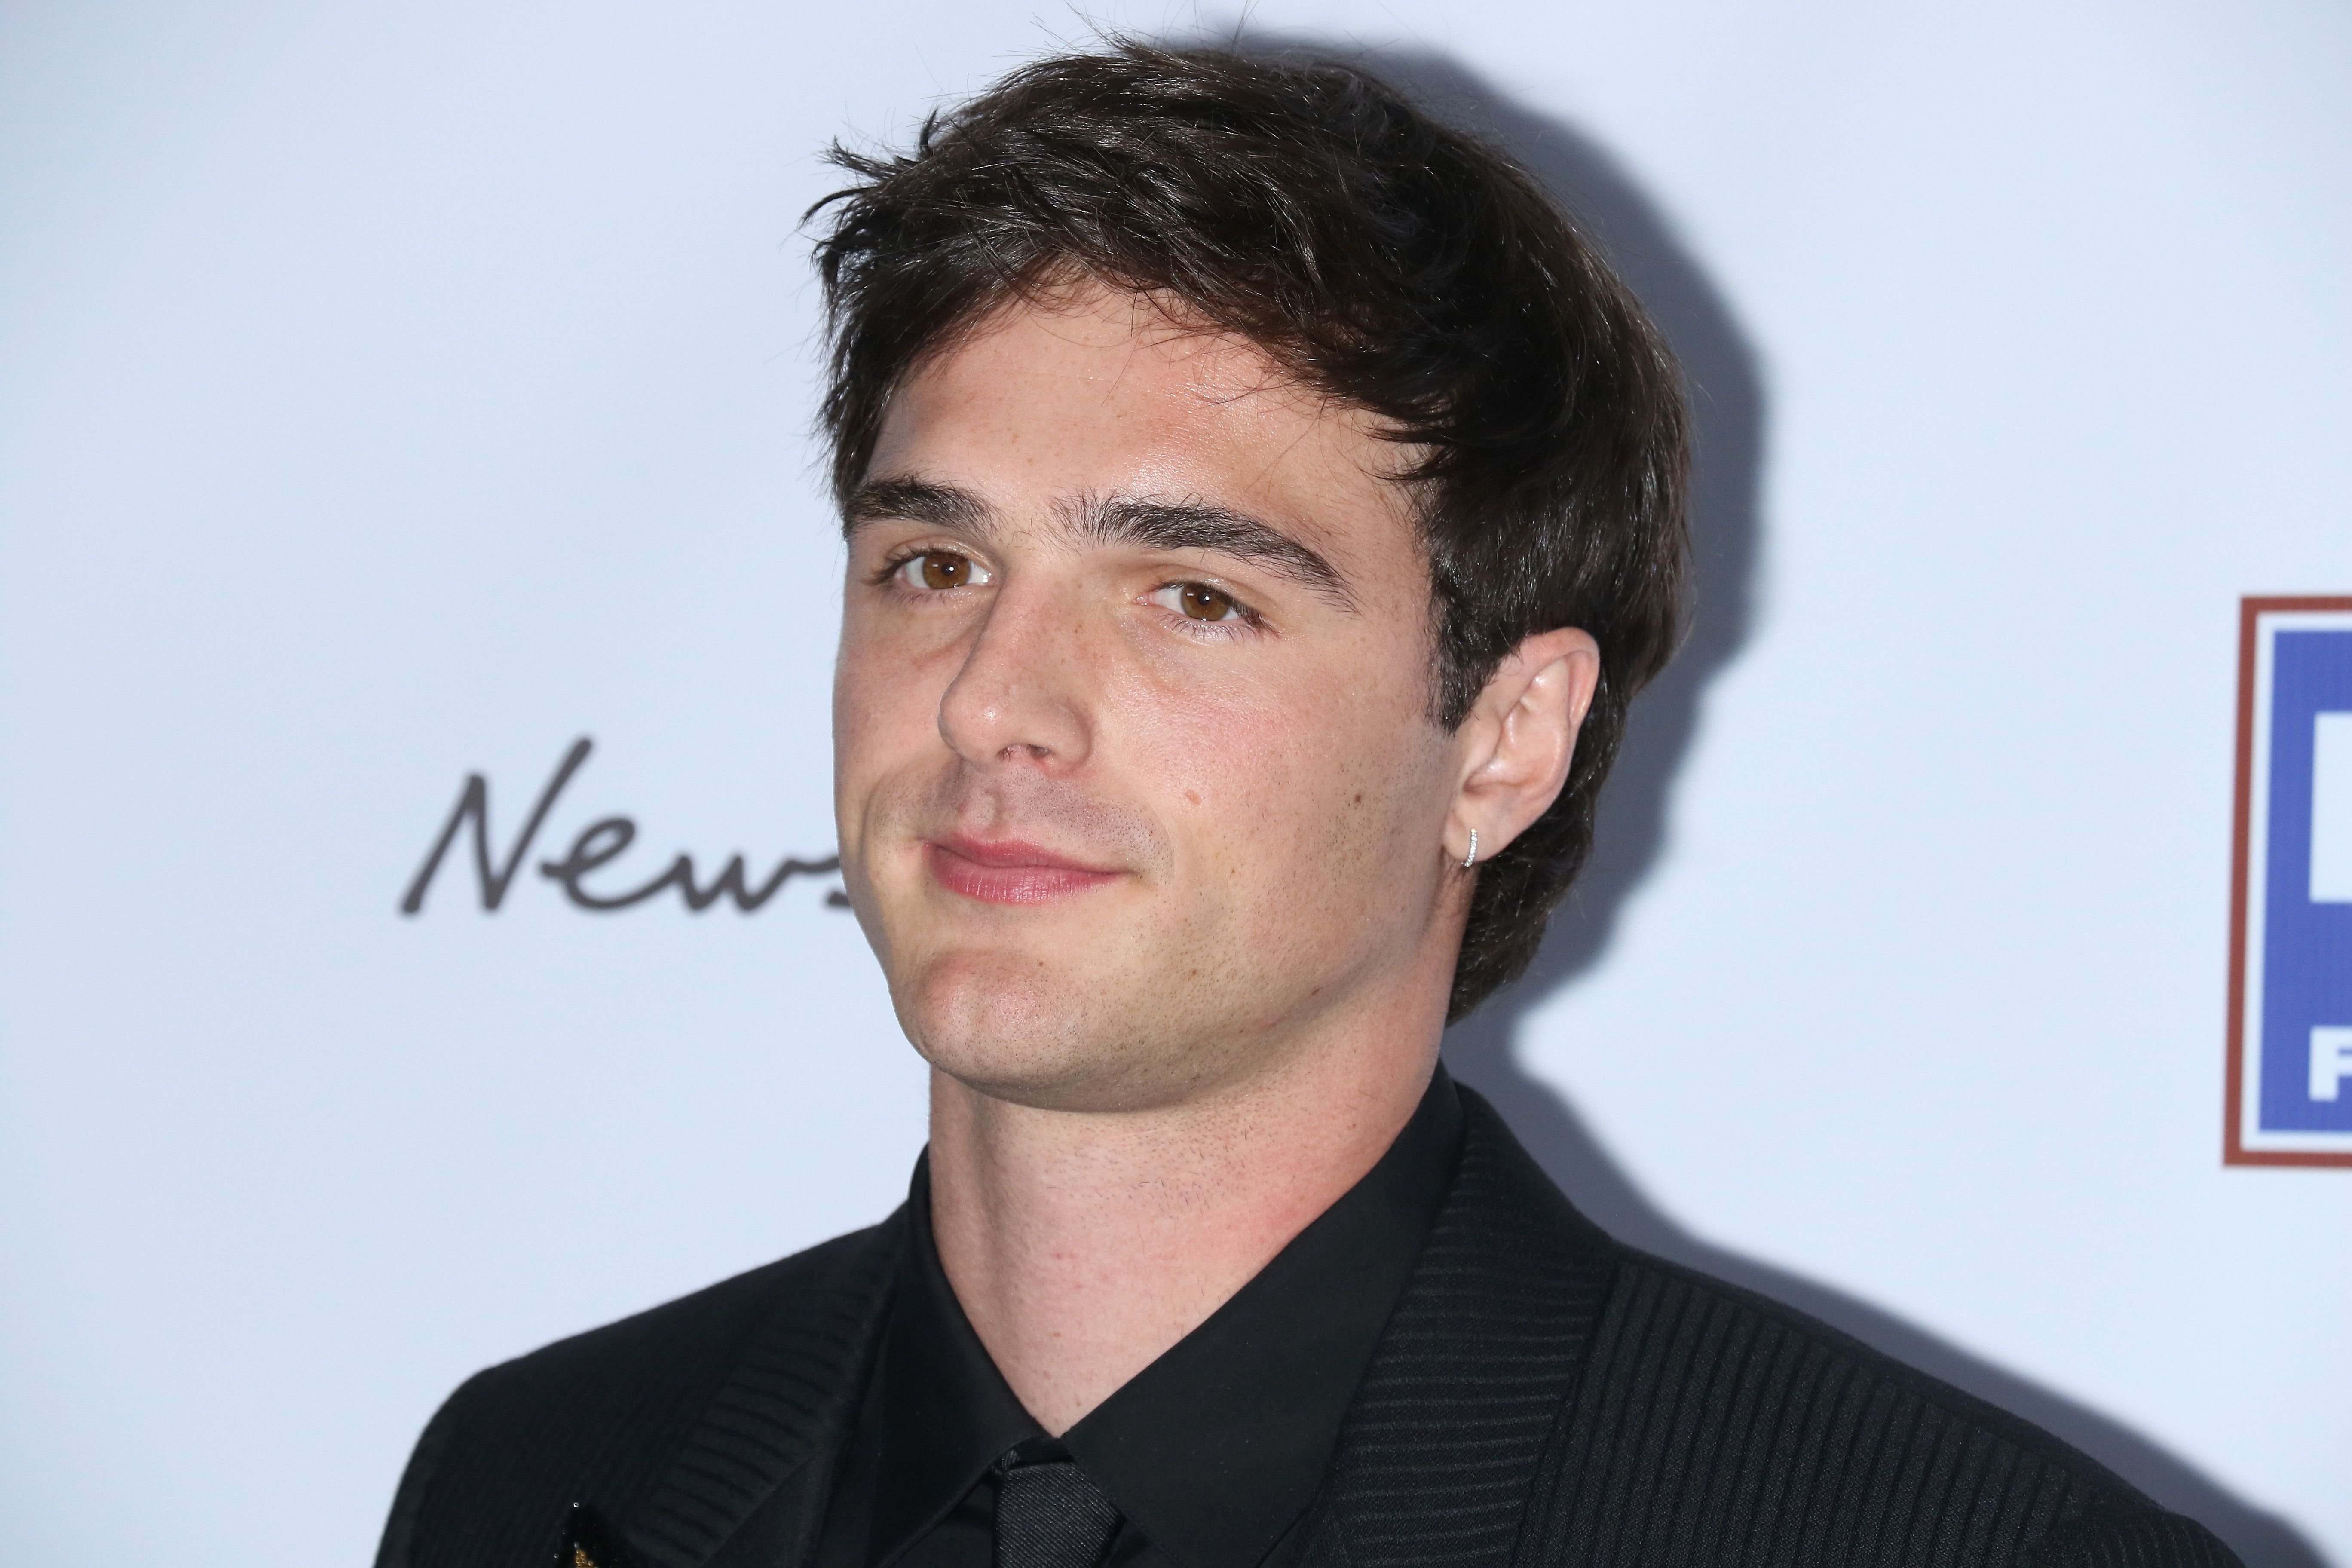 Jacob Elordi at the 2020 AAA Arts Awards in January 2020 in New York City | Source: Getty Images